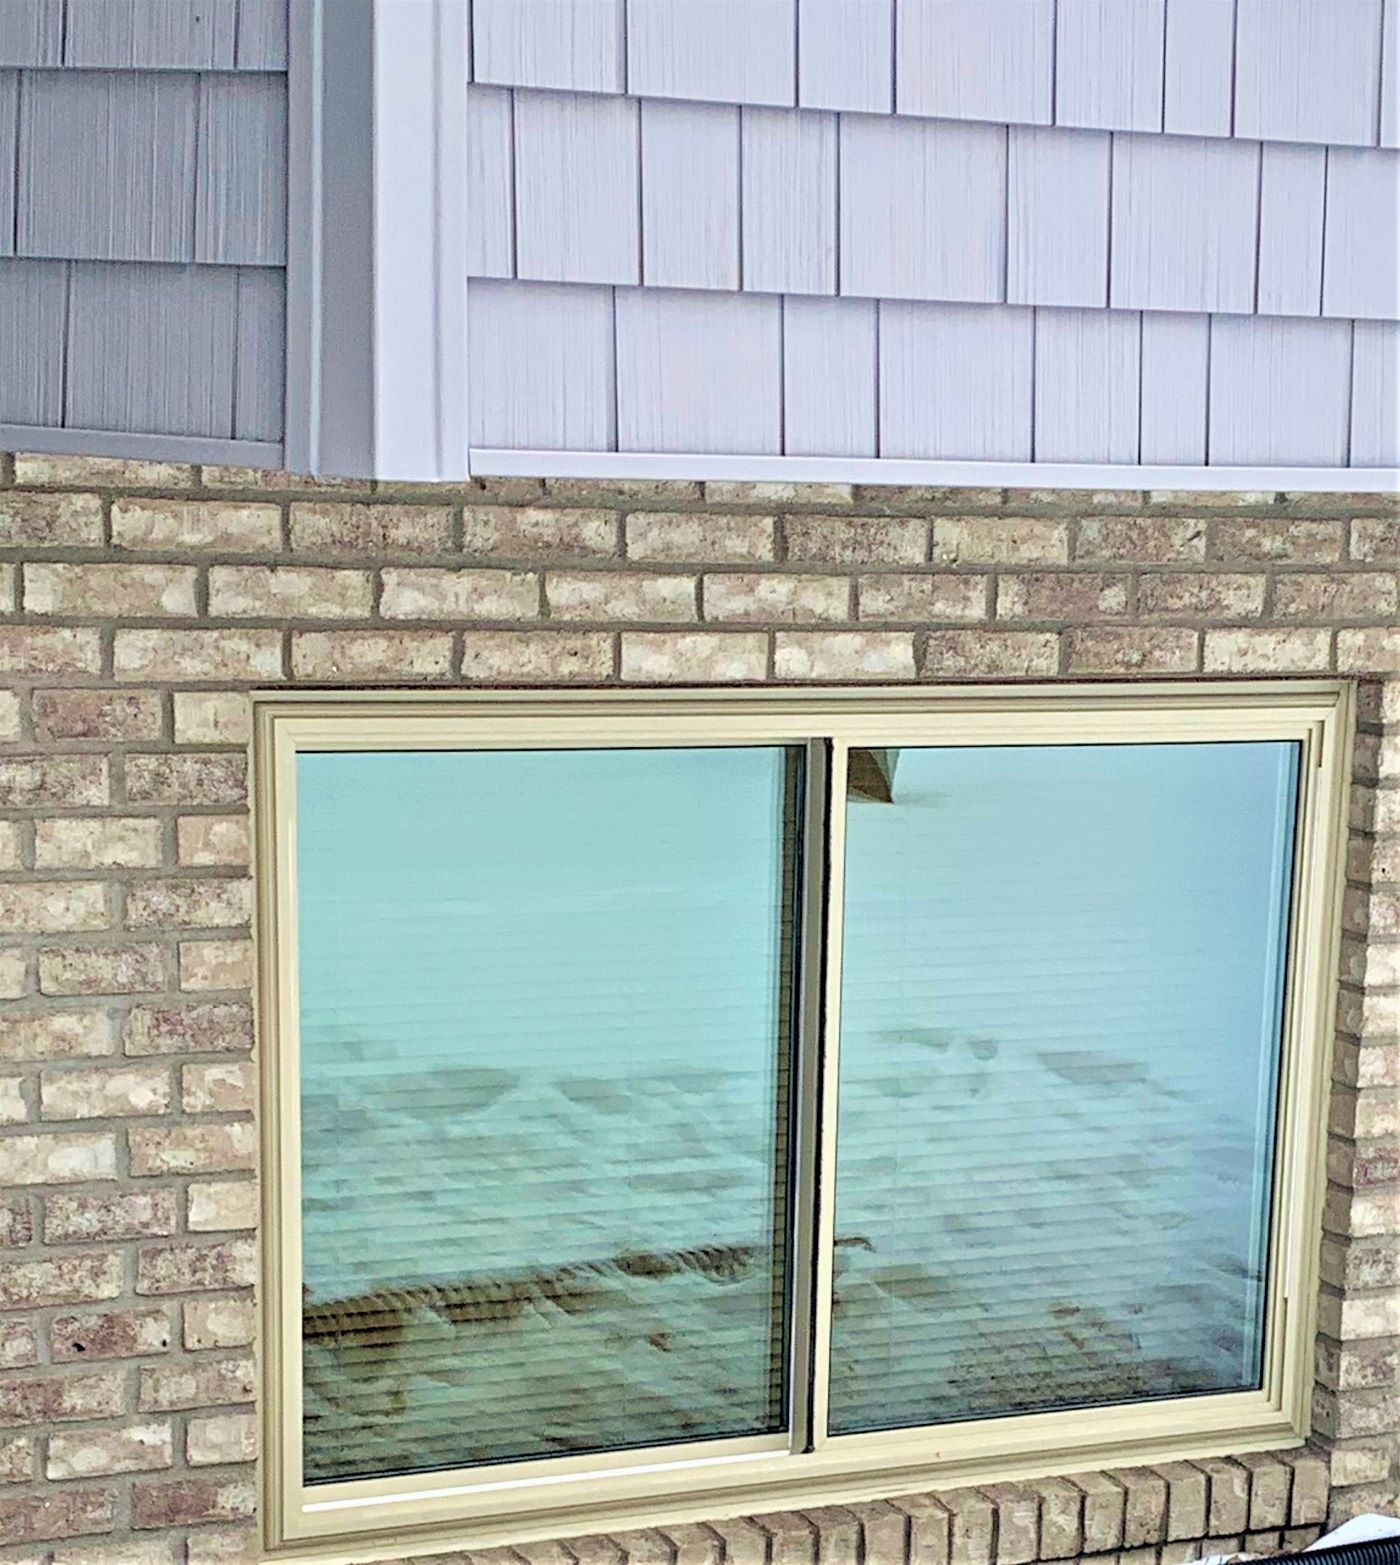 Blaine SeasonGuard windows